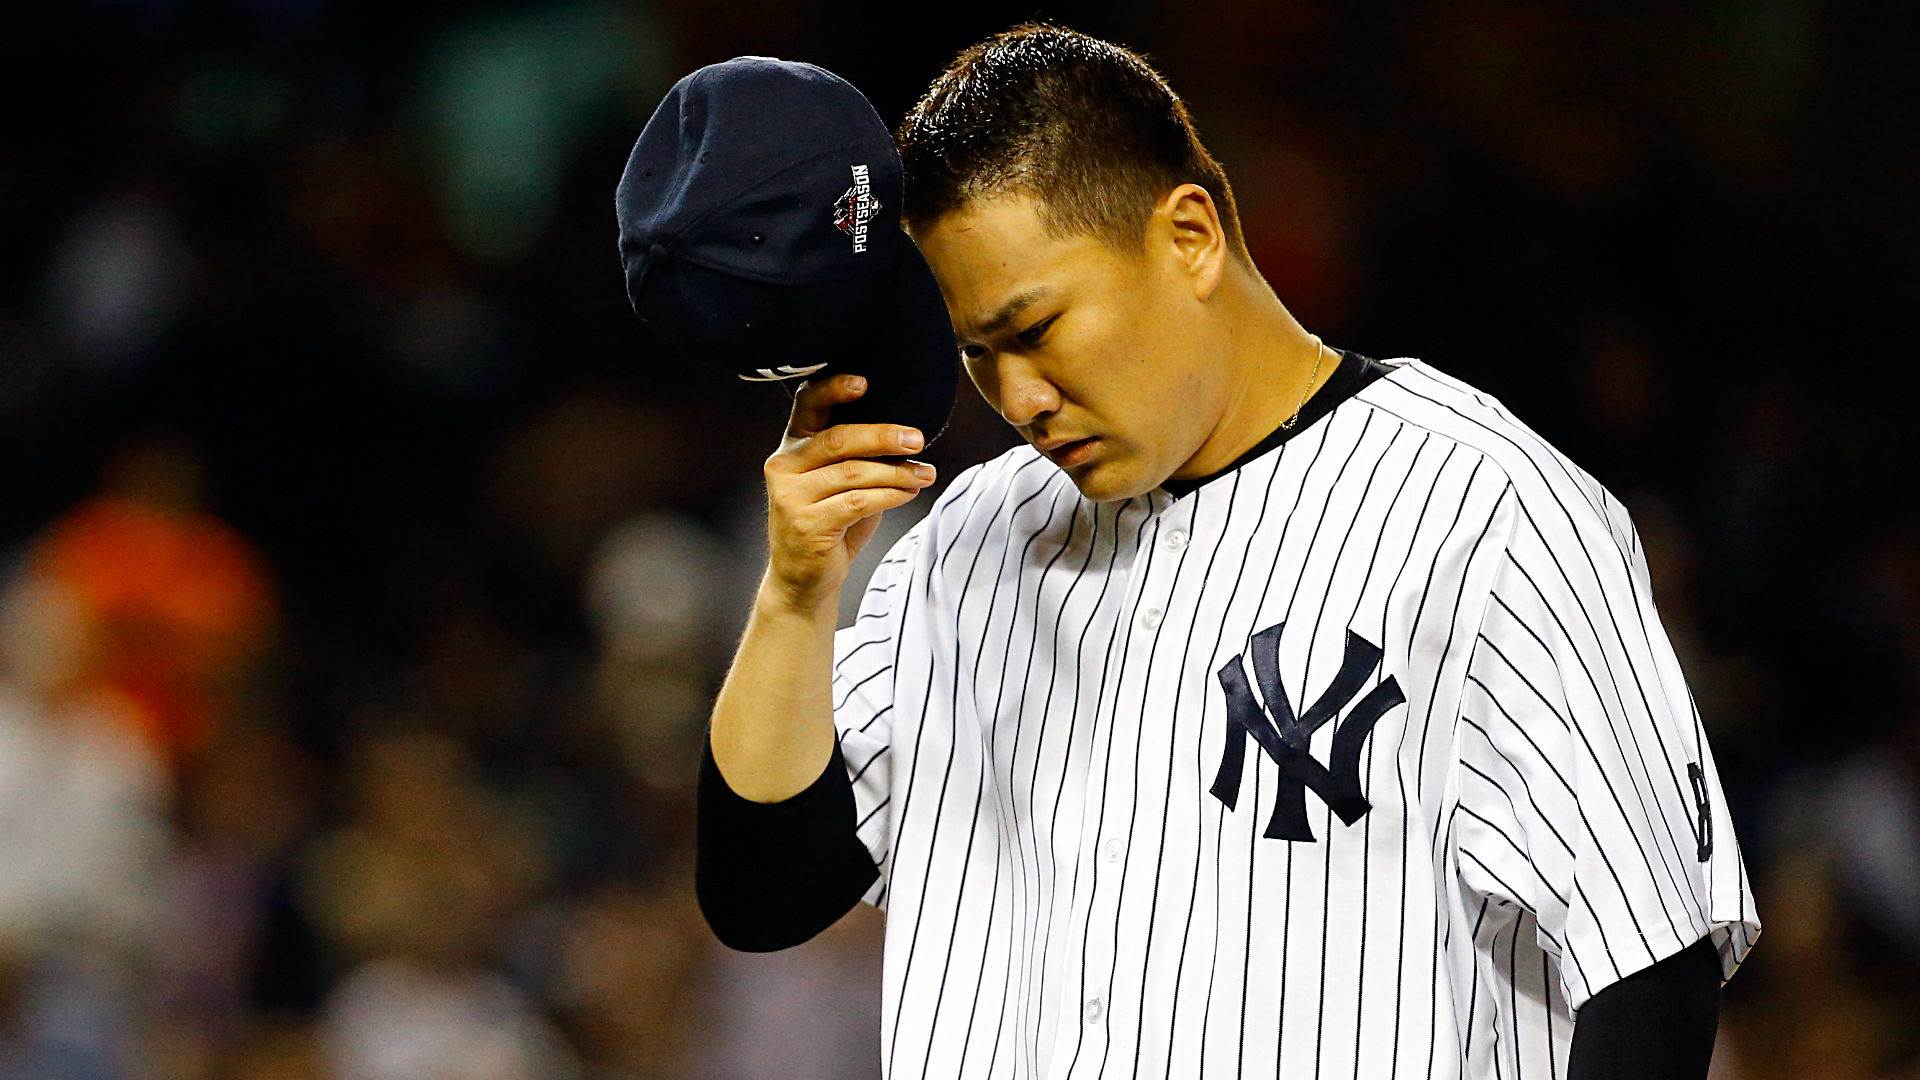 Yankees put RHP Tanaka on DL with shoulder inflammation